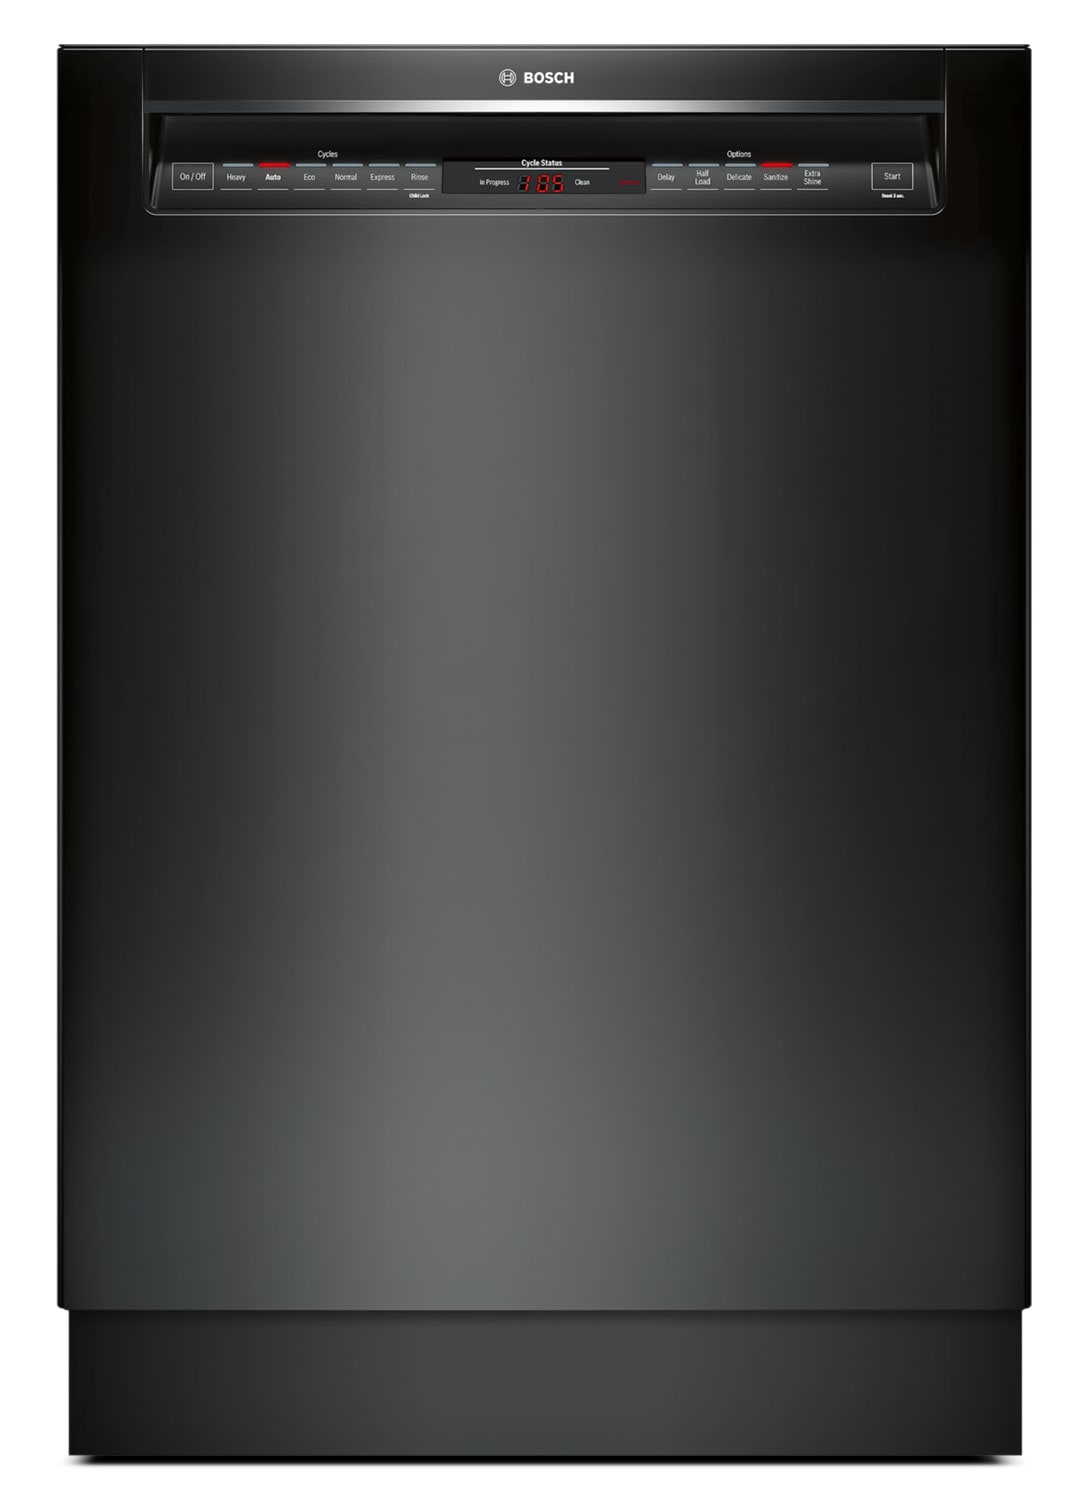 "Clean-Up - Bosch Black 24"" Dishwasher - SHE68T56UC"